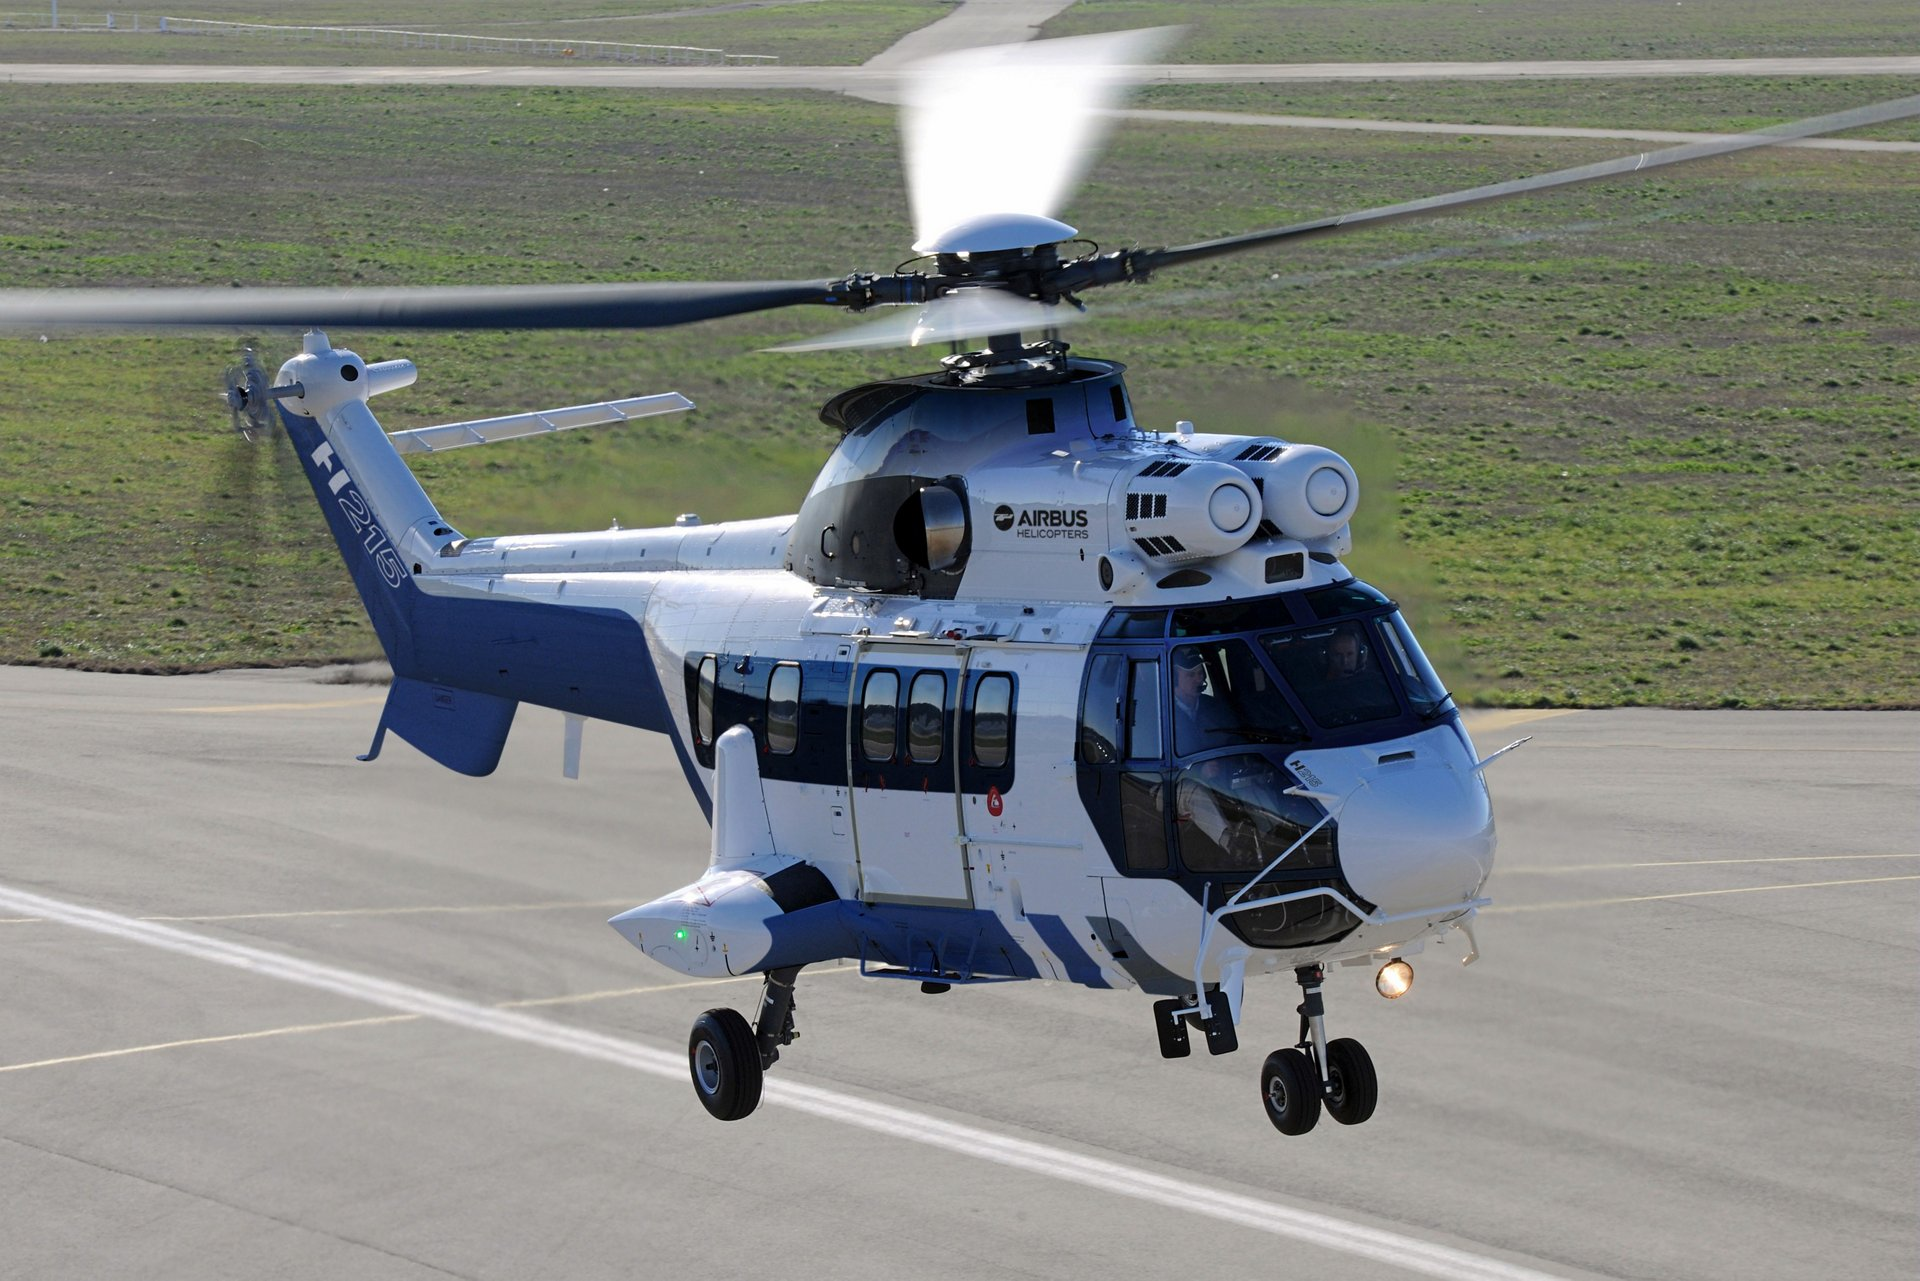 Airtelis, with the support of Nova Capital Group, has signed a contract with Airbus Helicopters for the purchase of three H215 heavy helicopters, including two options.